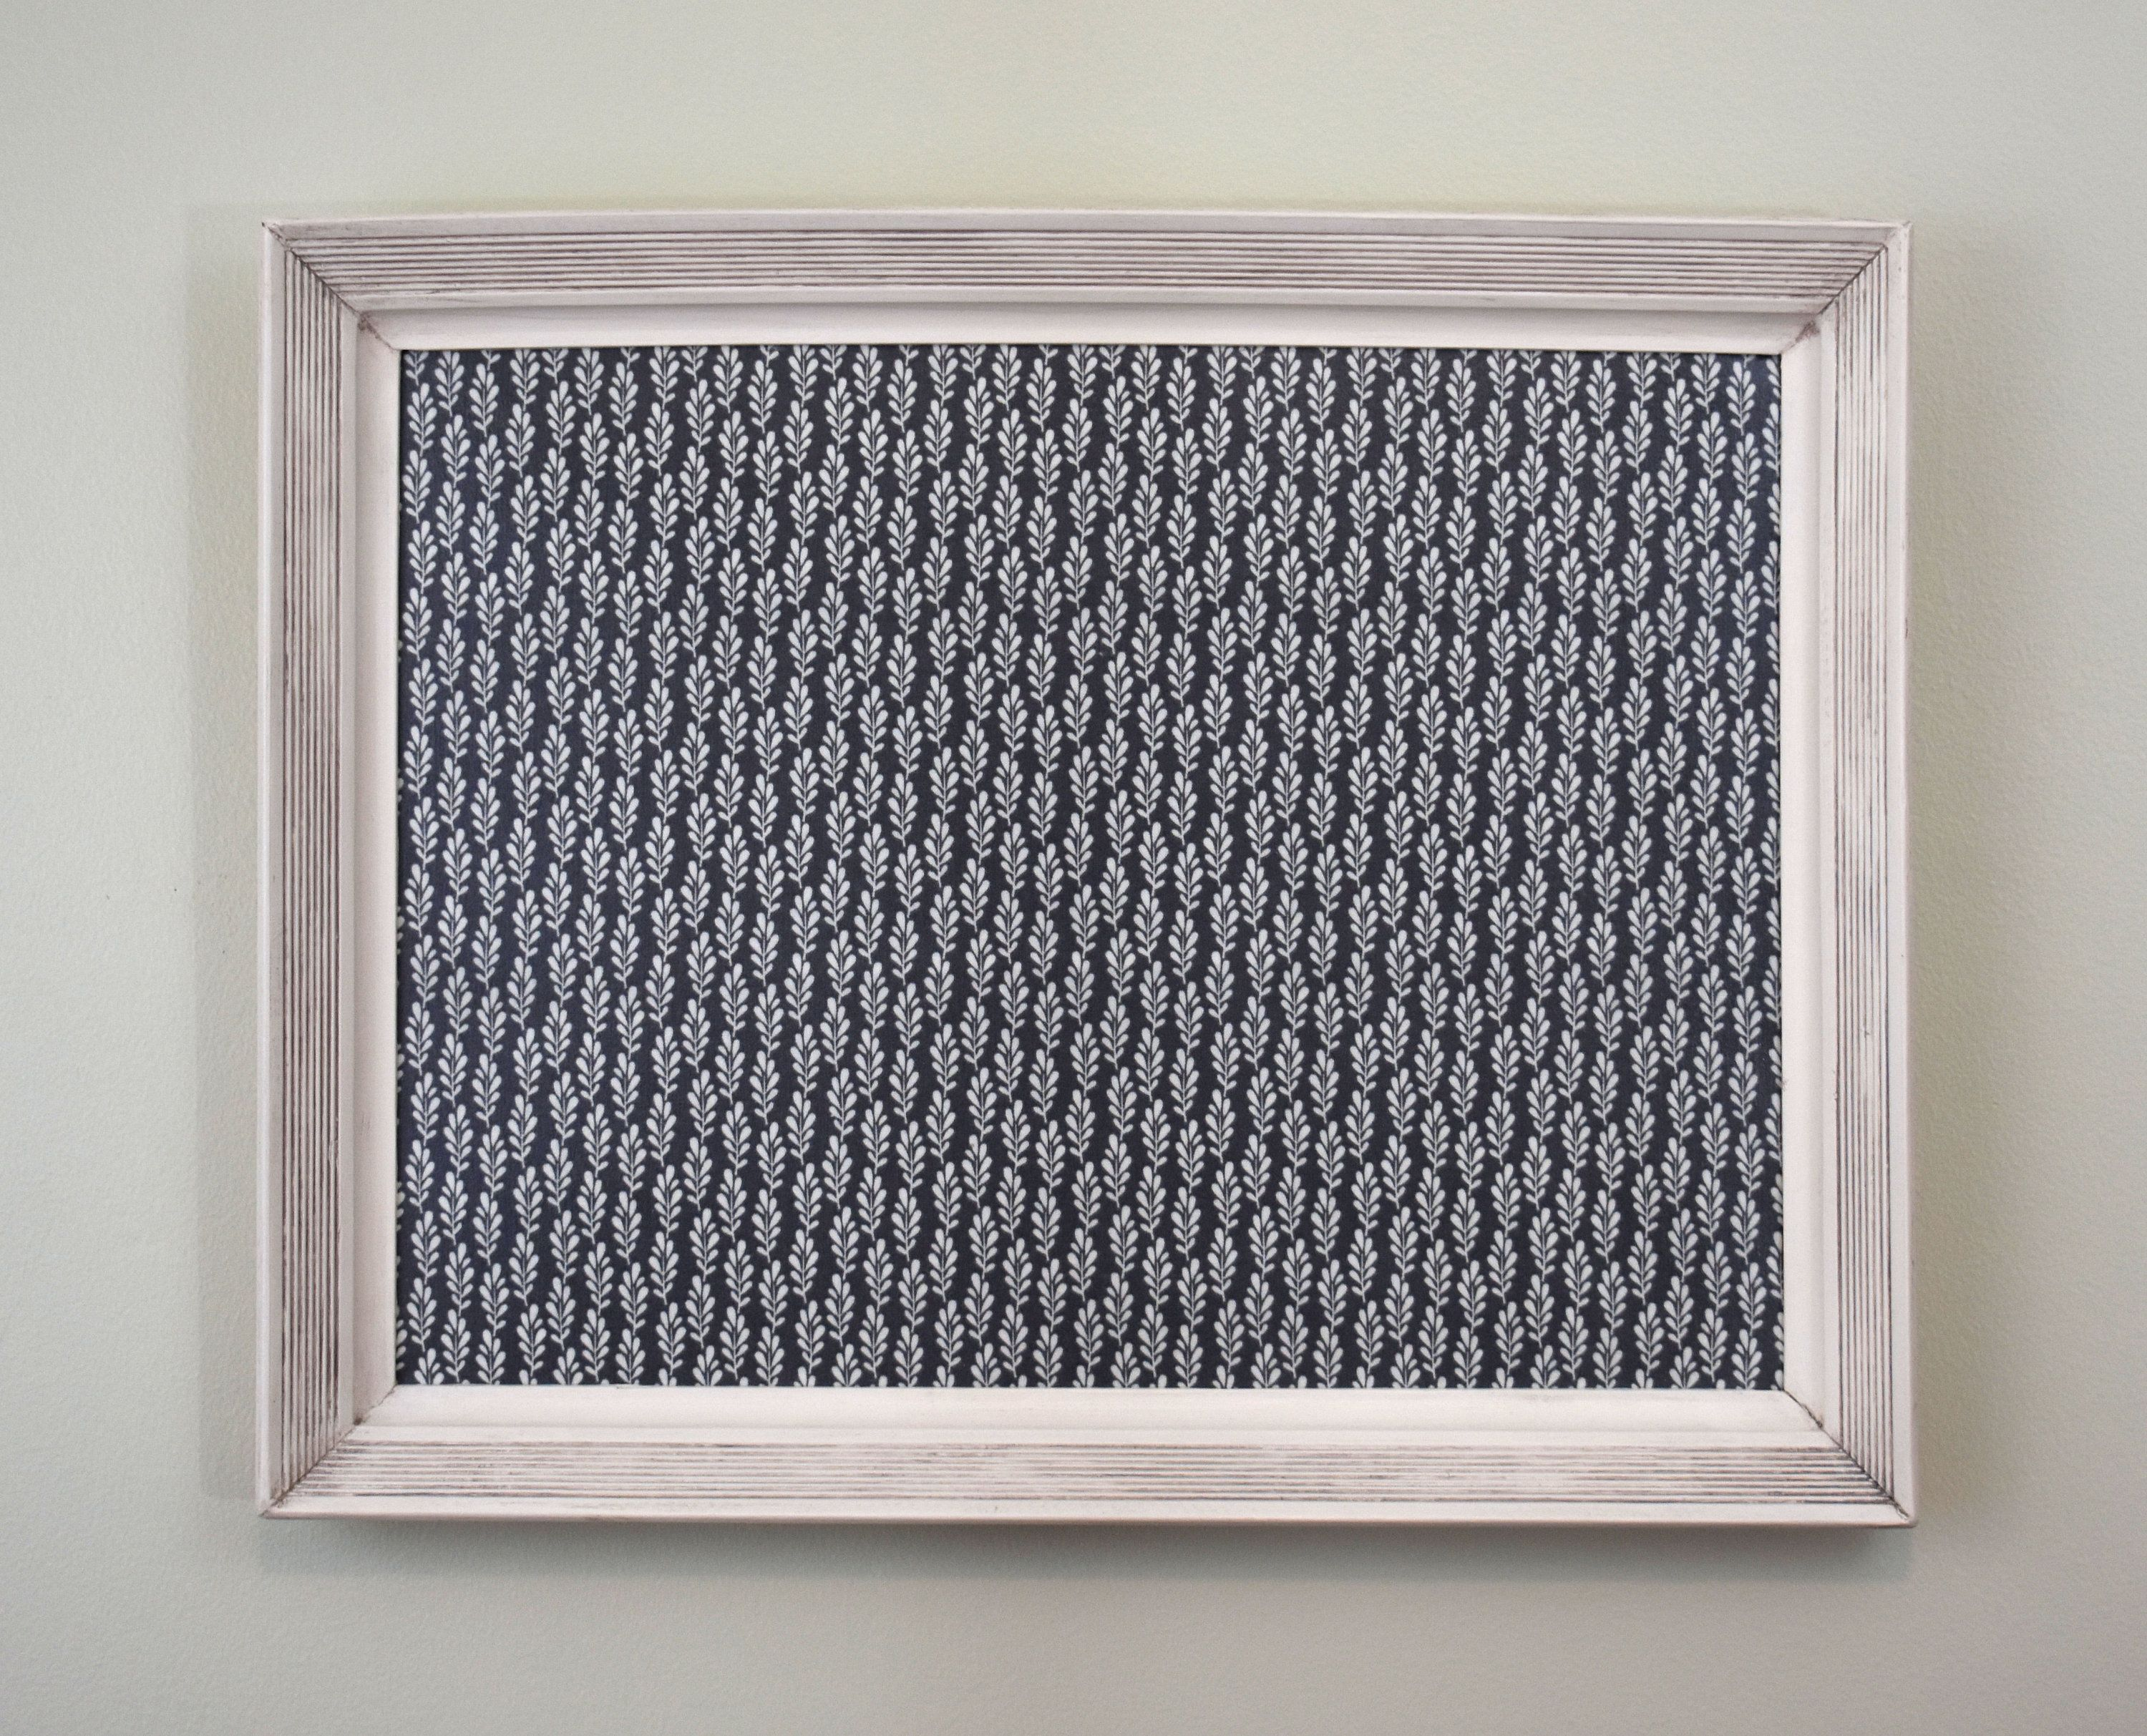 338fe16574c08 White Magnet Board with Gray Background - Magnetic Bulletin Board ...